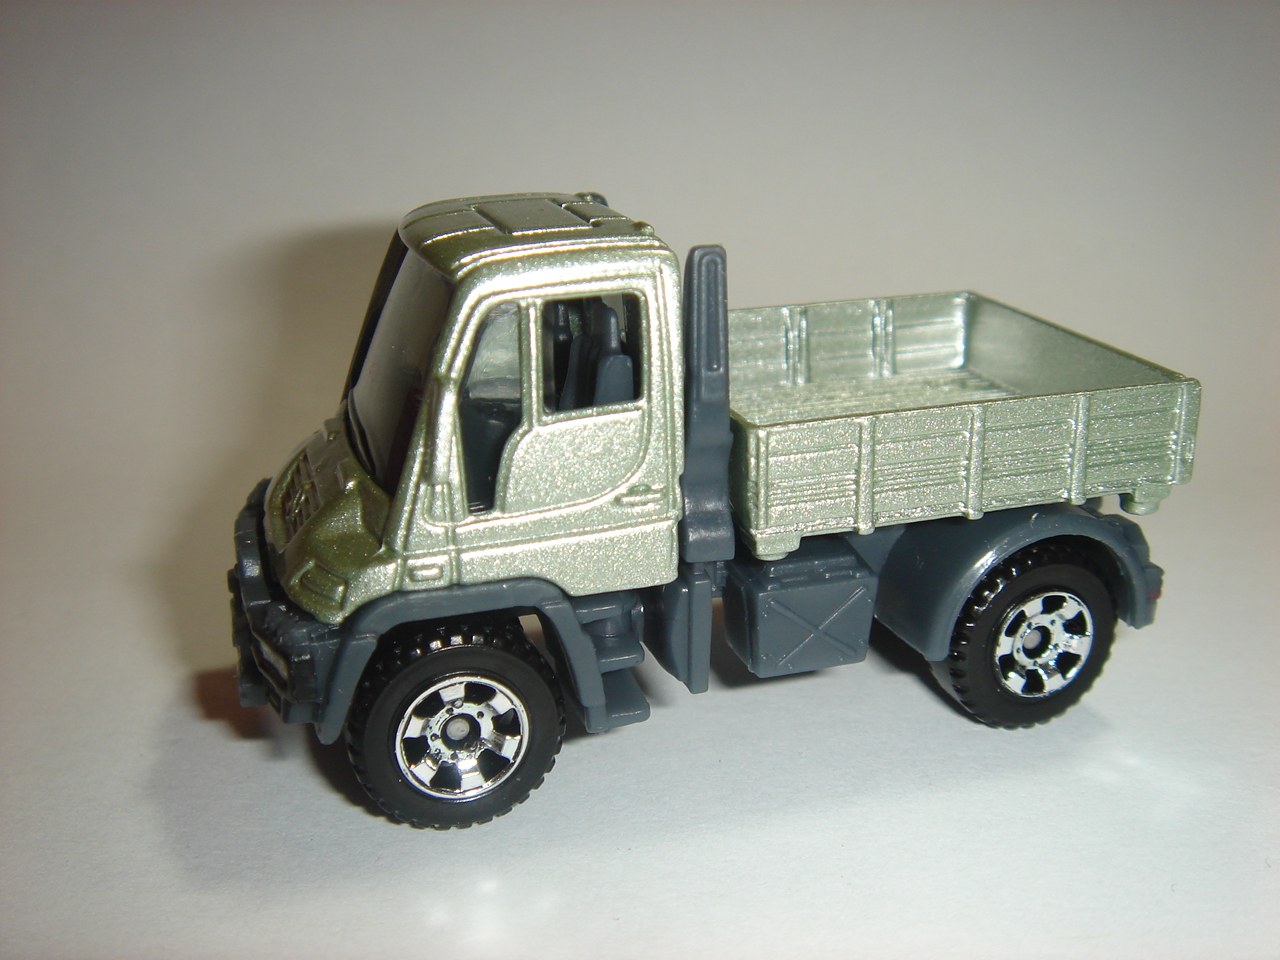 mercedes benz unimog u300 matchbox cars wiki. Black Bedroom Furniture Sets. Home Design Ideas